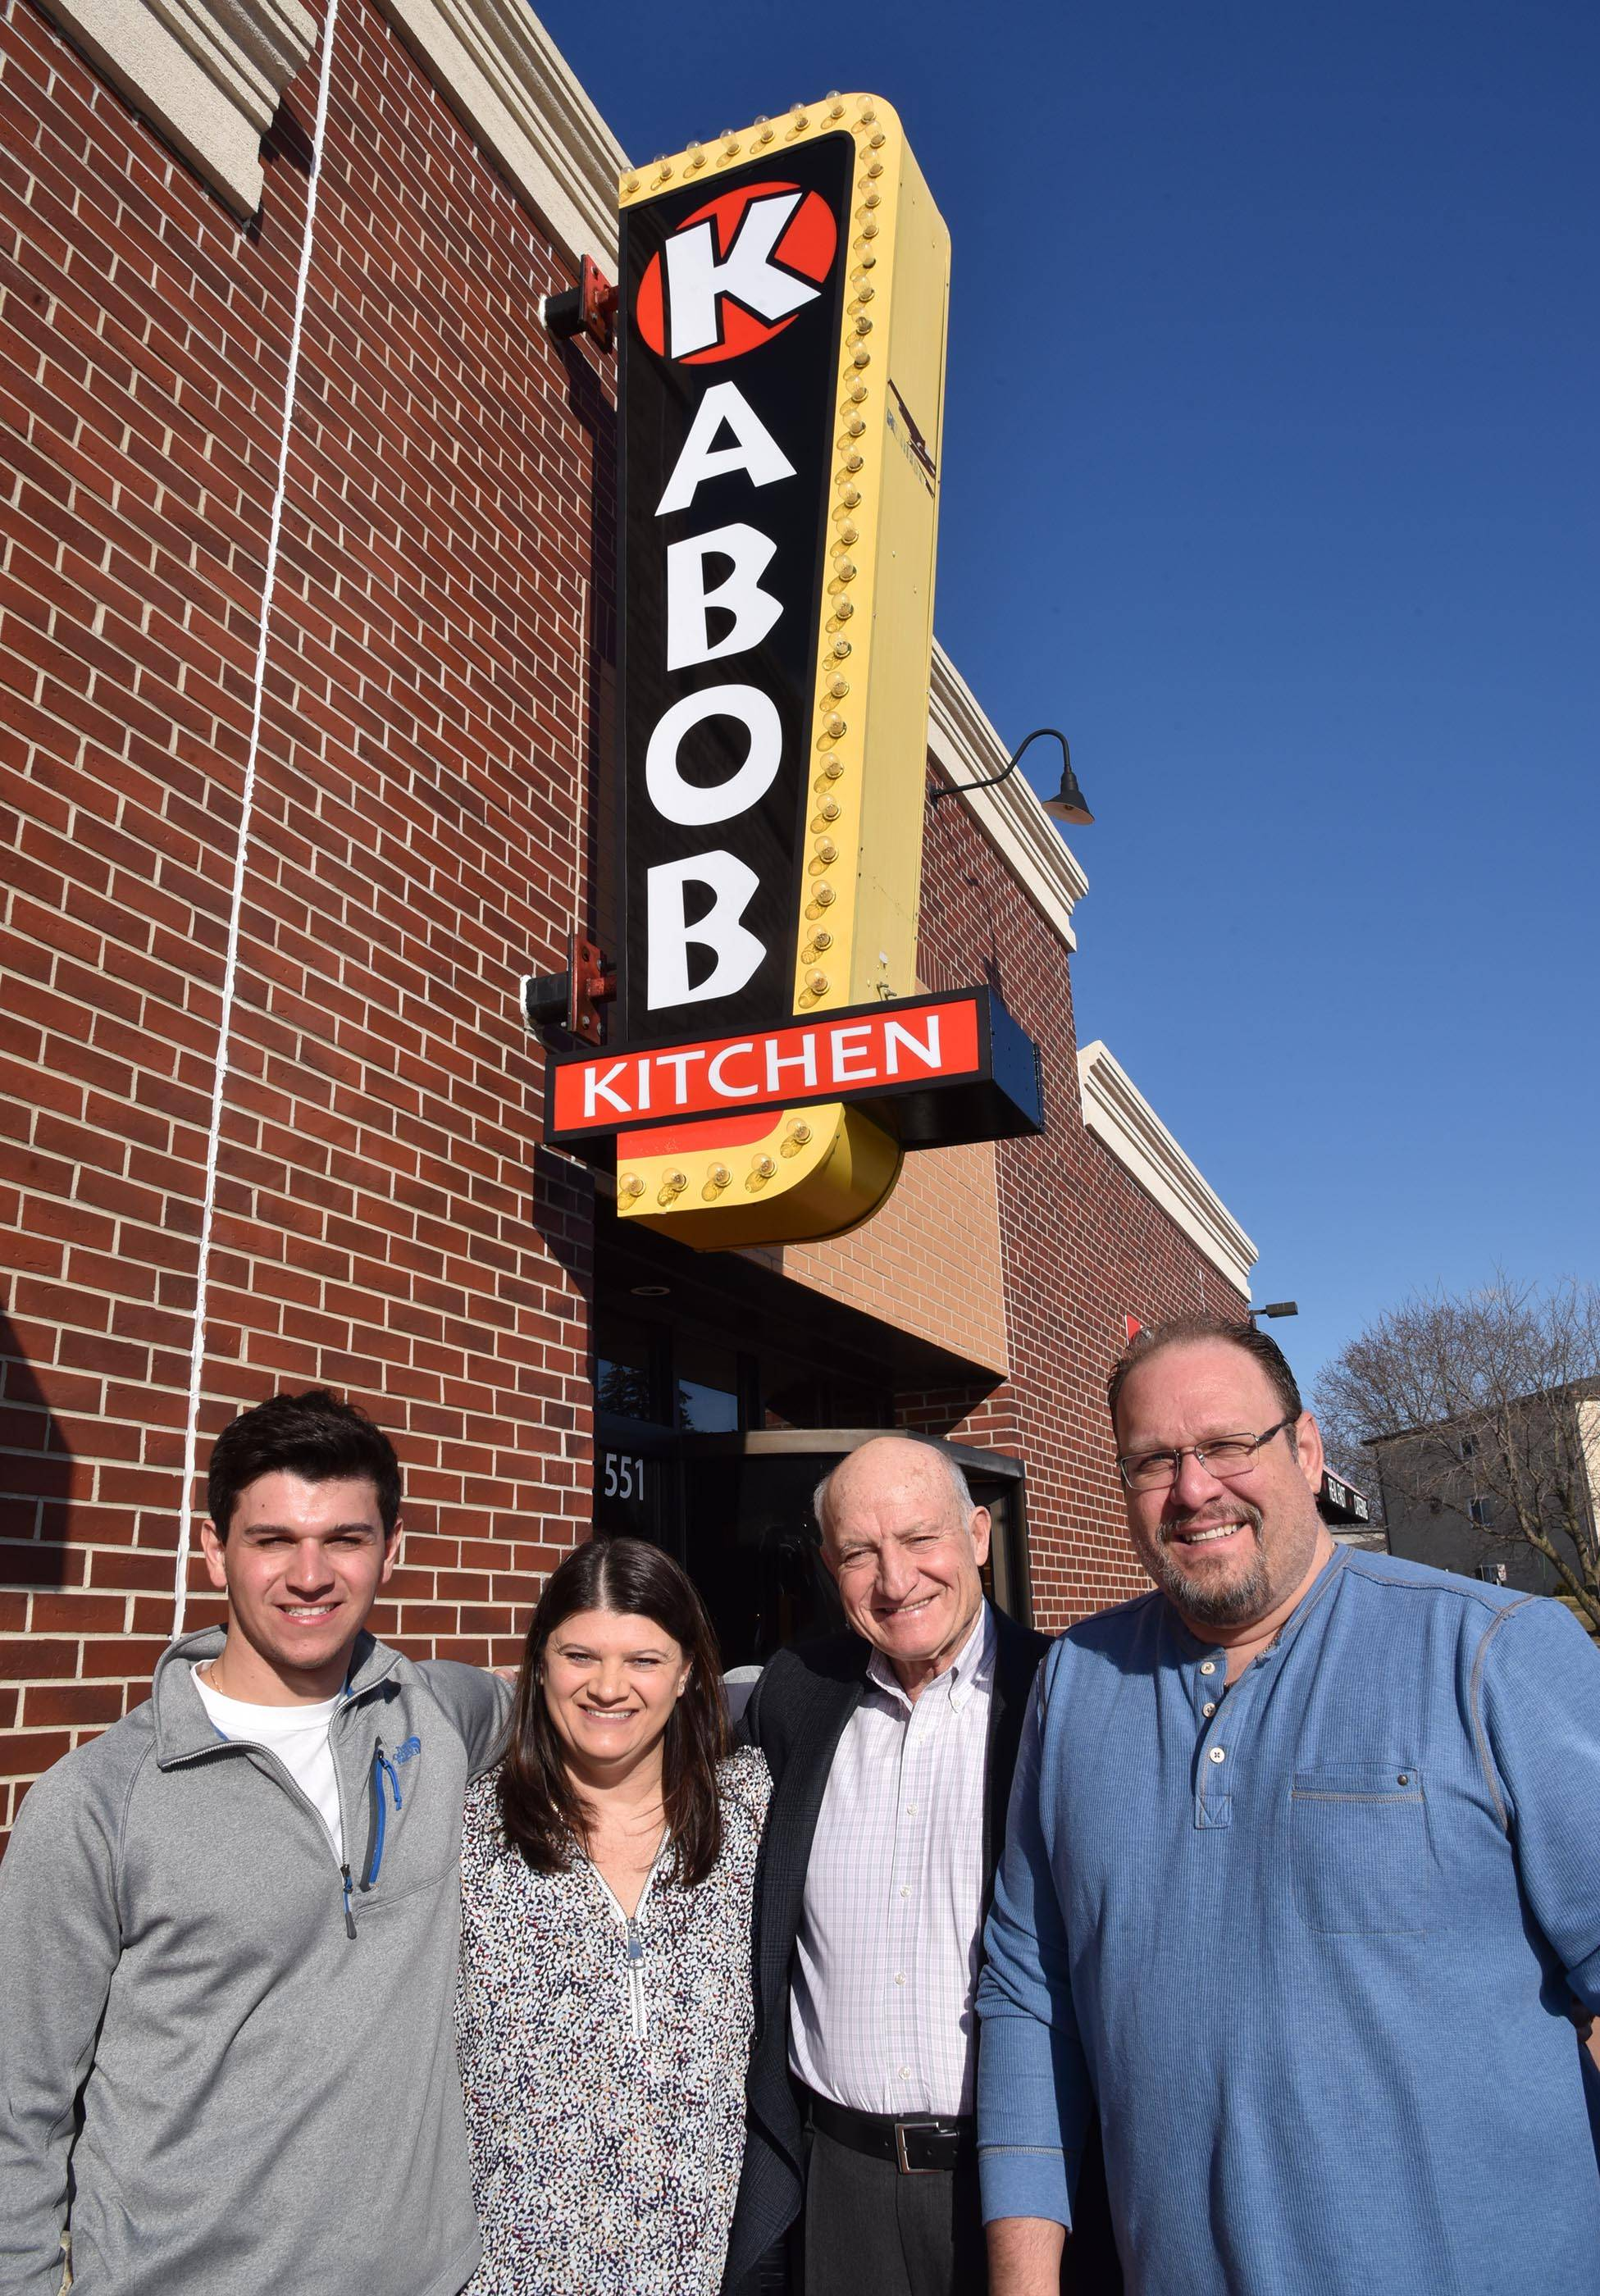 Three generations of family will operate Kabob Kitchen, which is expected to open in mid-March at the former Maxwell's Hot Dogs in West Dundee. From left are Adam Cardaras, Dina Cardaras, Jimmy Panagakis, and George Kyriazis.